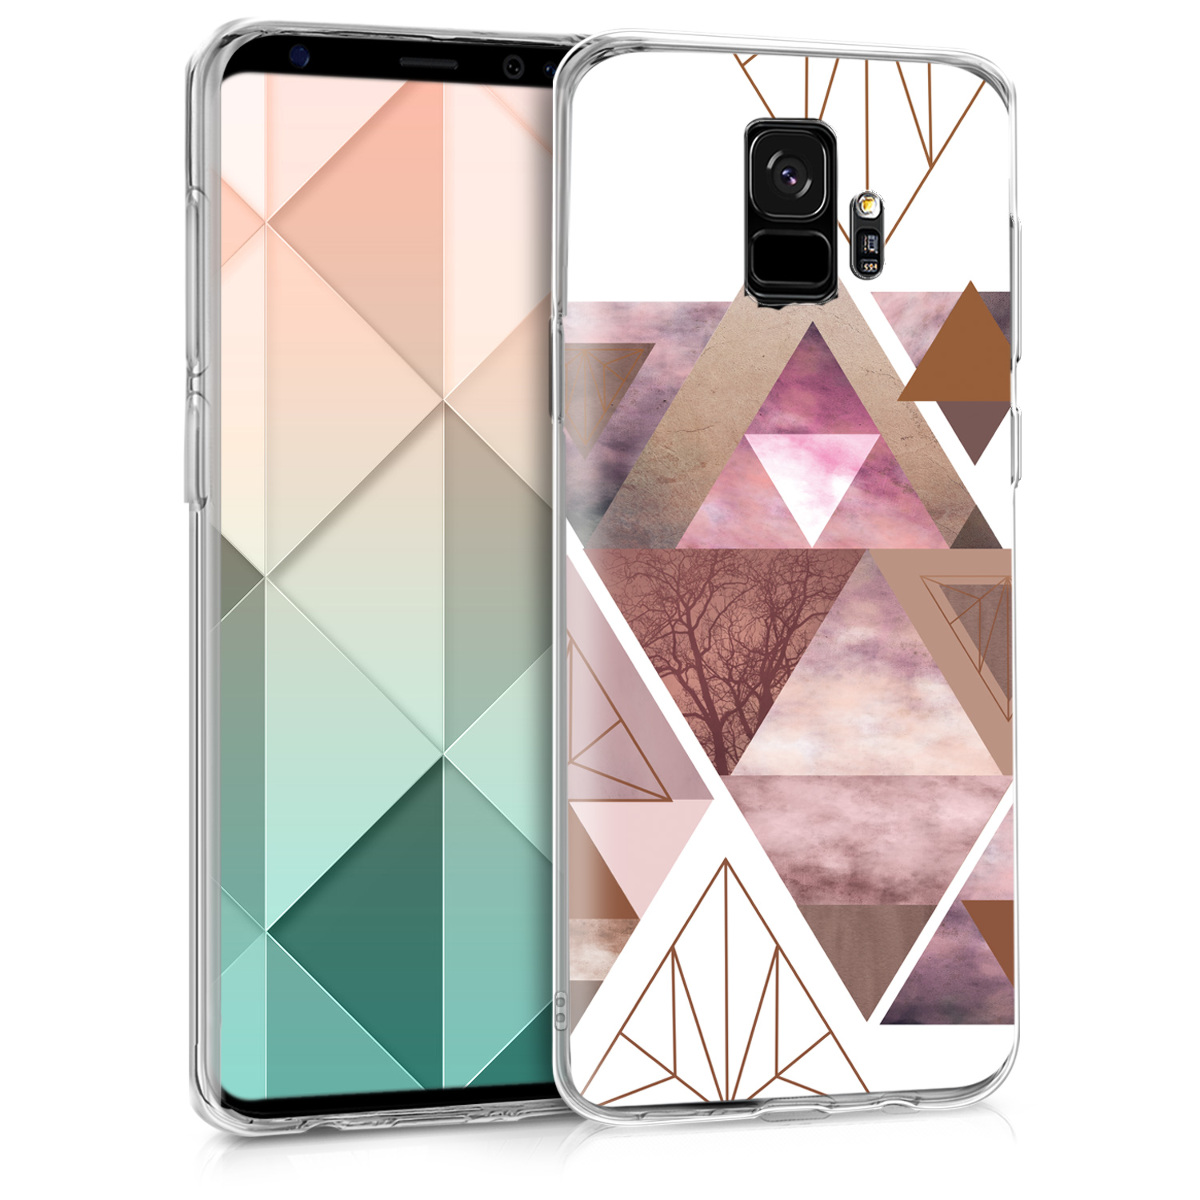 Pouzdro pro Samsung Galaxy S9 - TPU Crystal Clear Back Protective Cover IMD Design - Patchwork Triangles Light Pink / Rose Gold / White